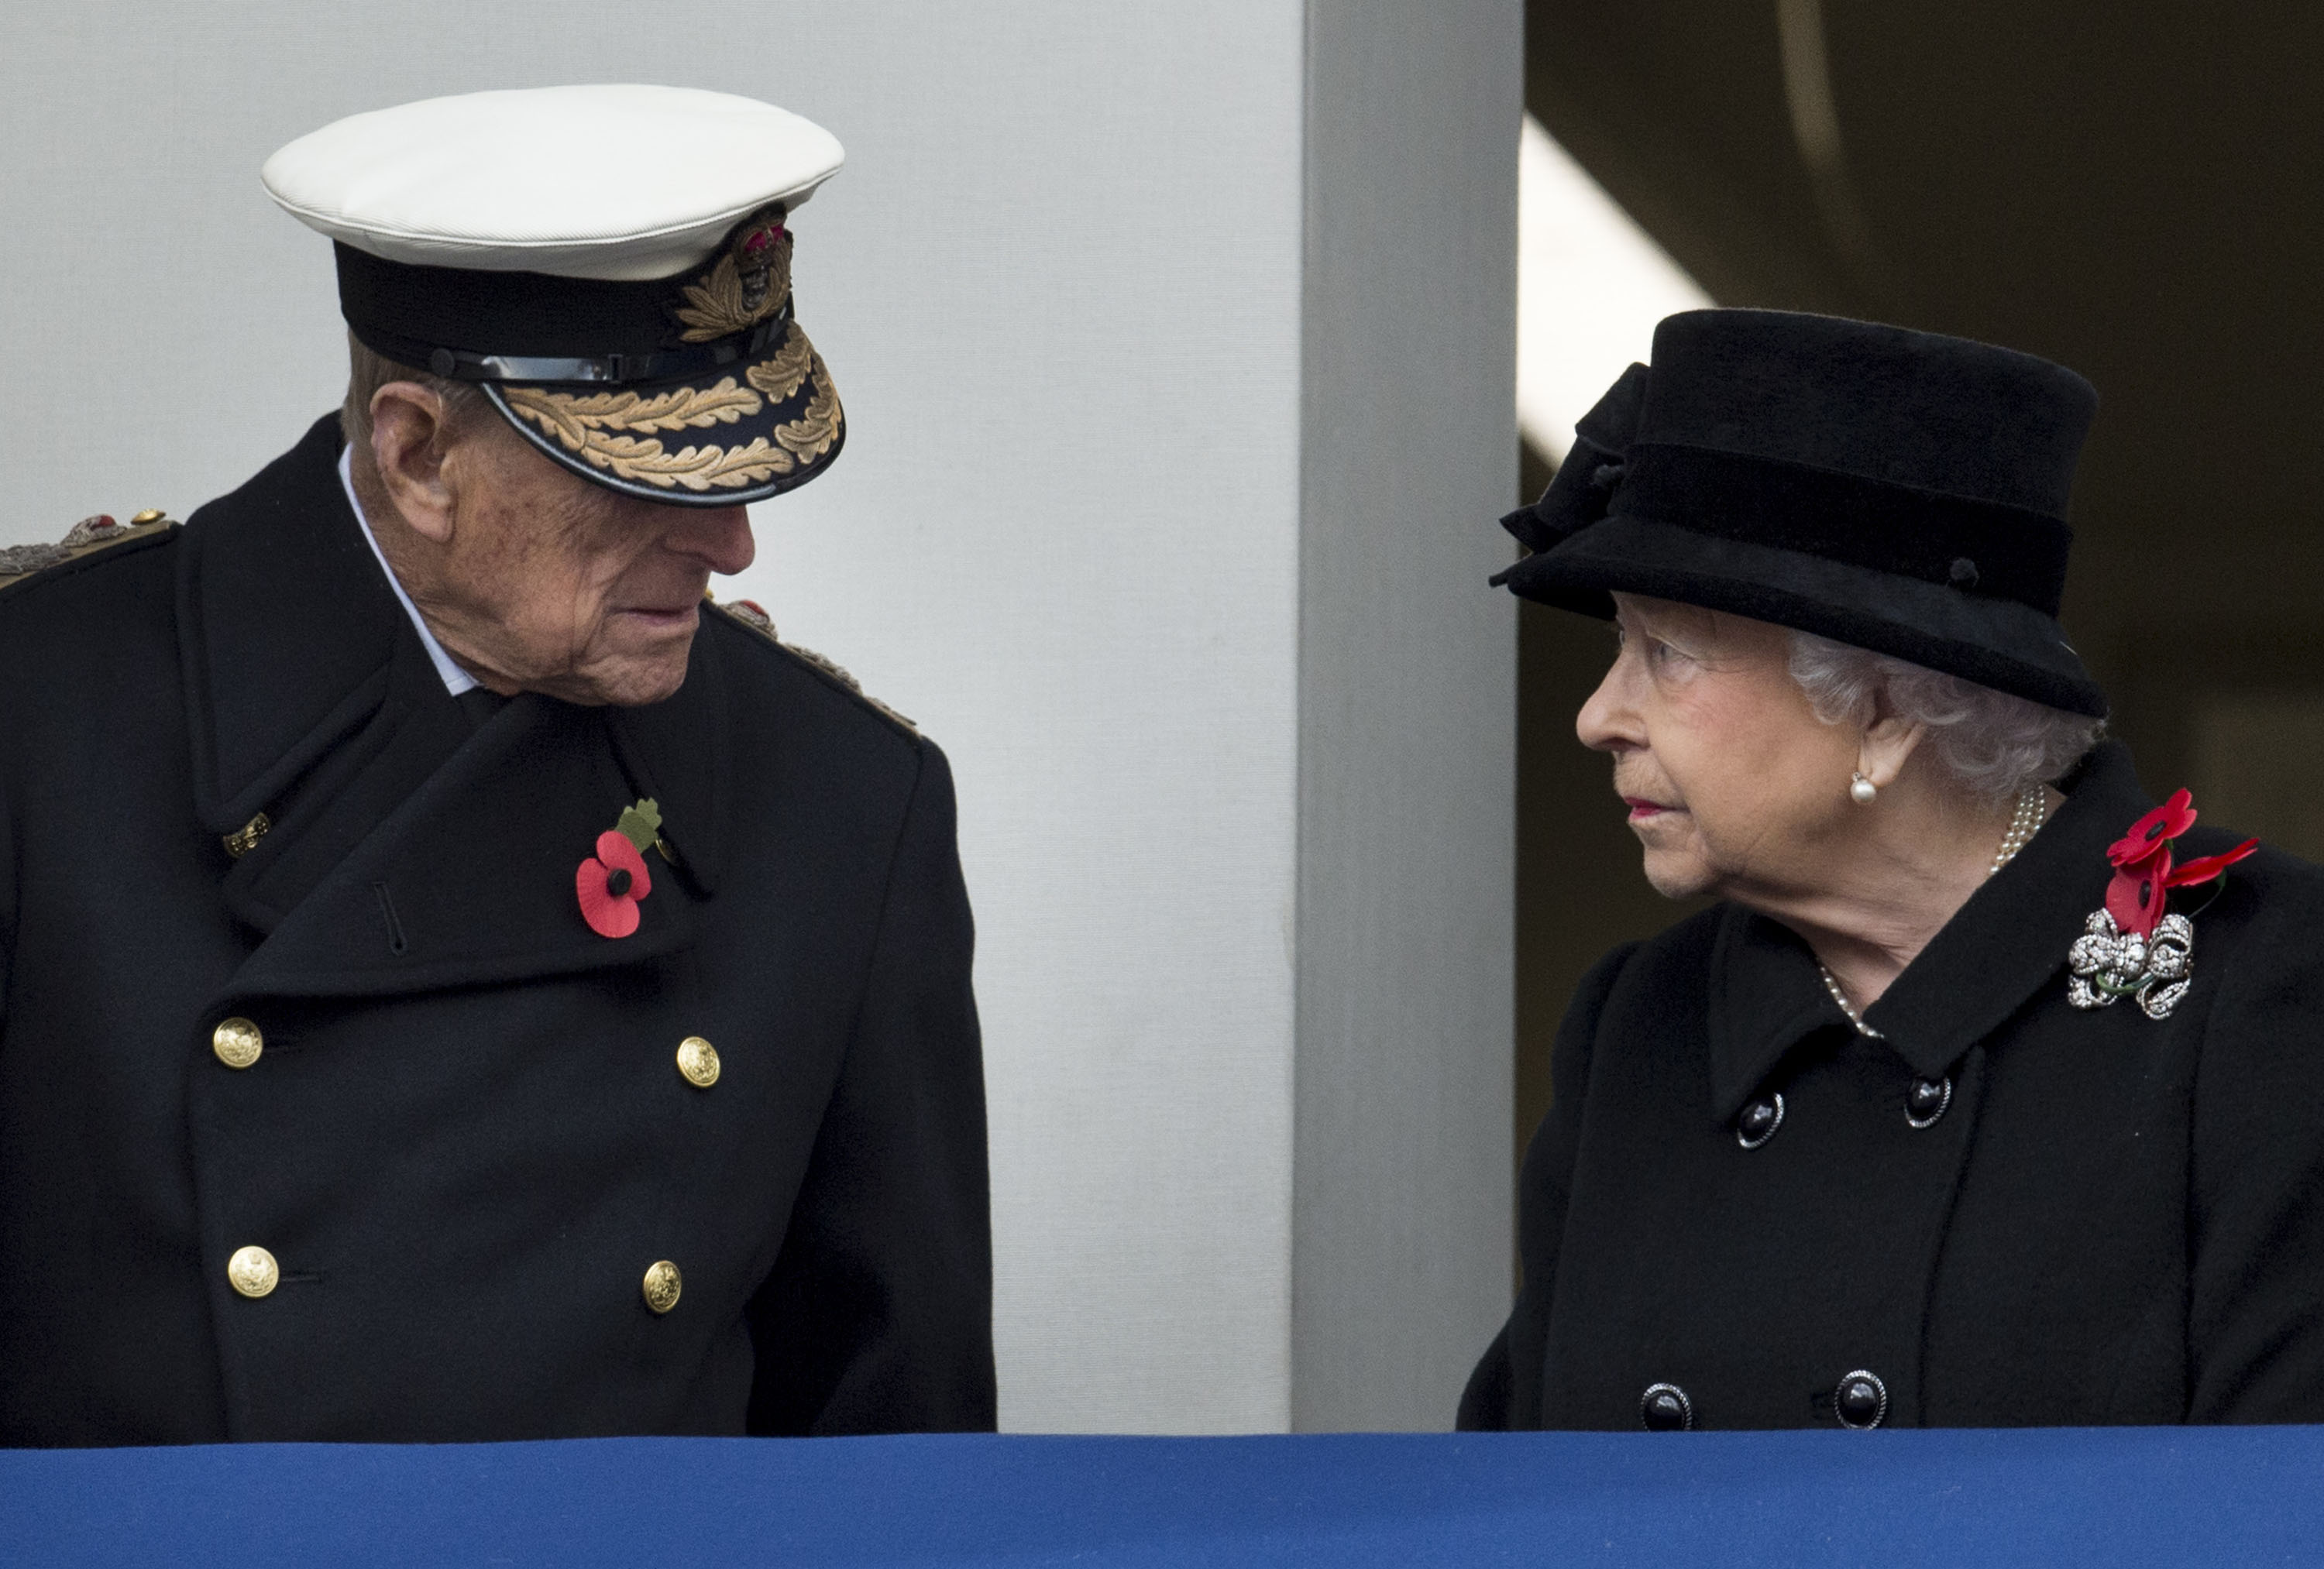 queen elizabeth remembrance day